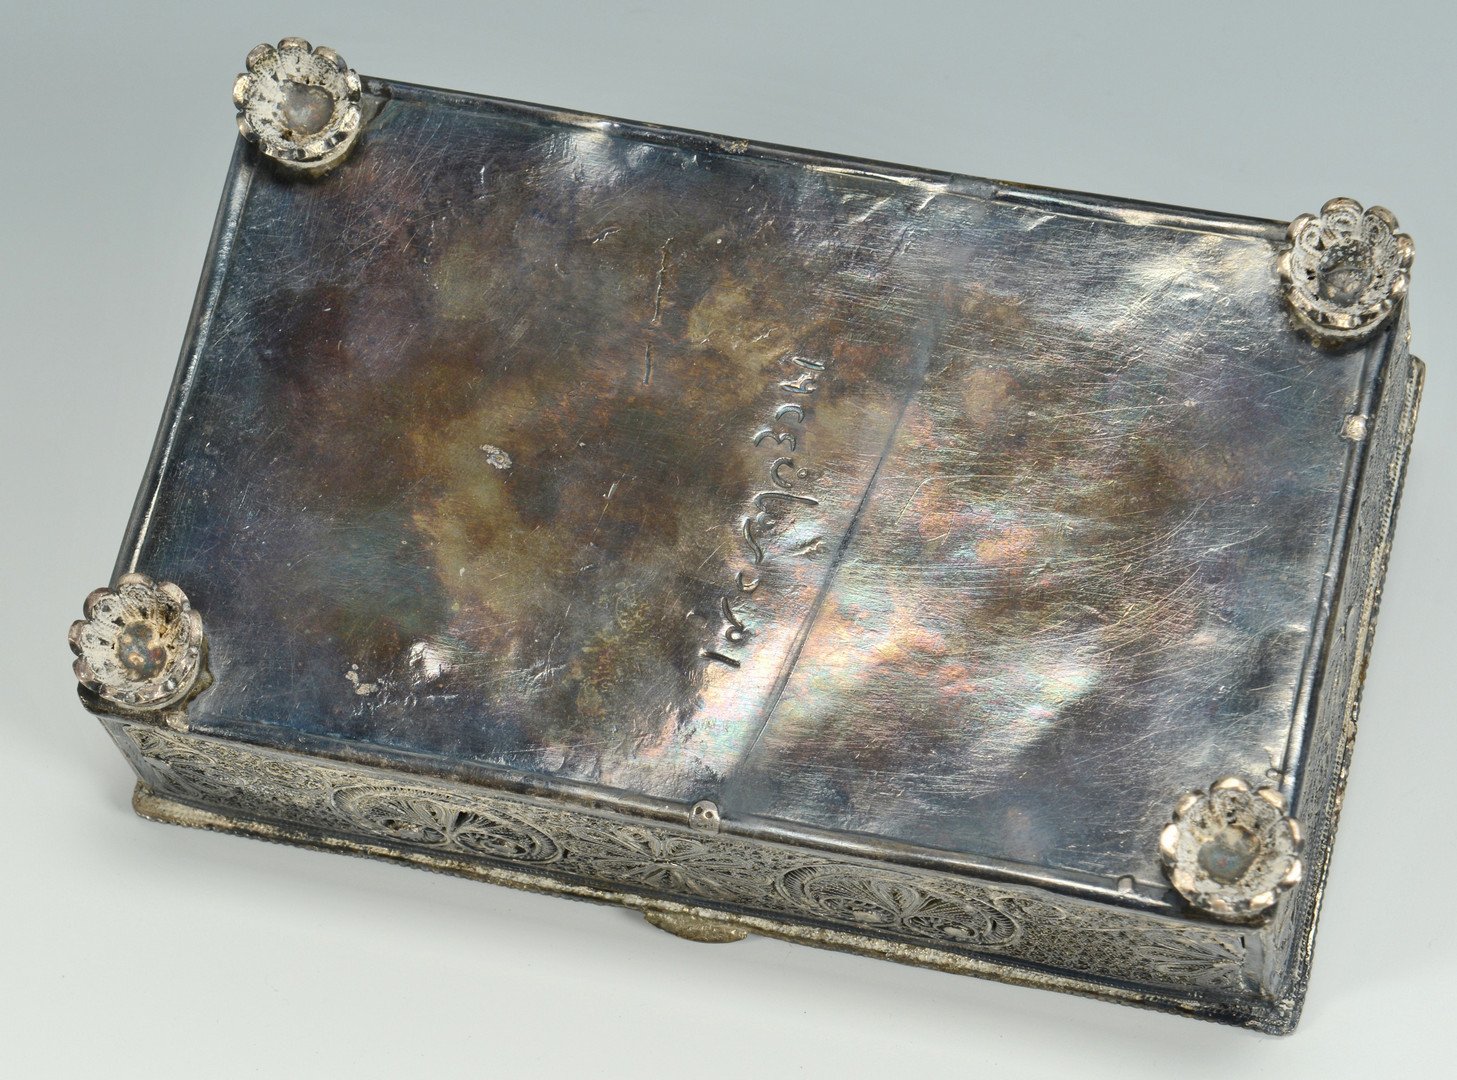 Lot 681: Silver filigree box with Jewelry